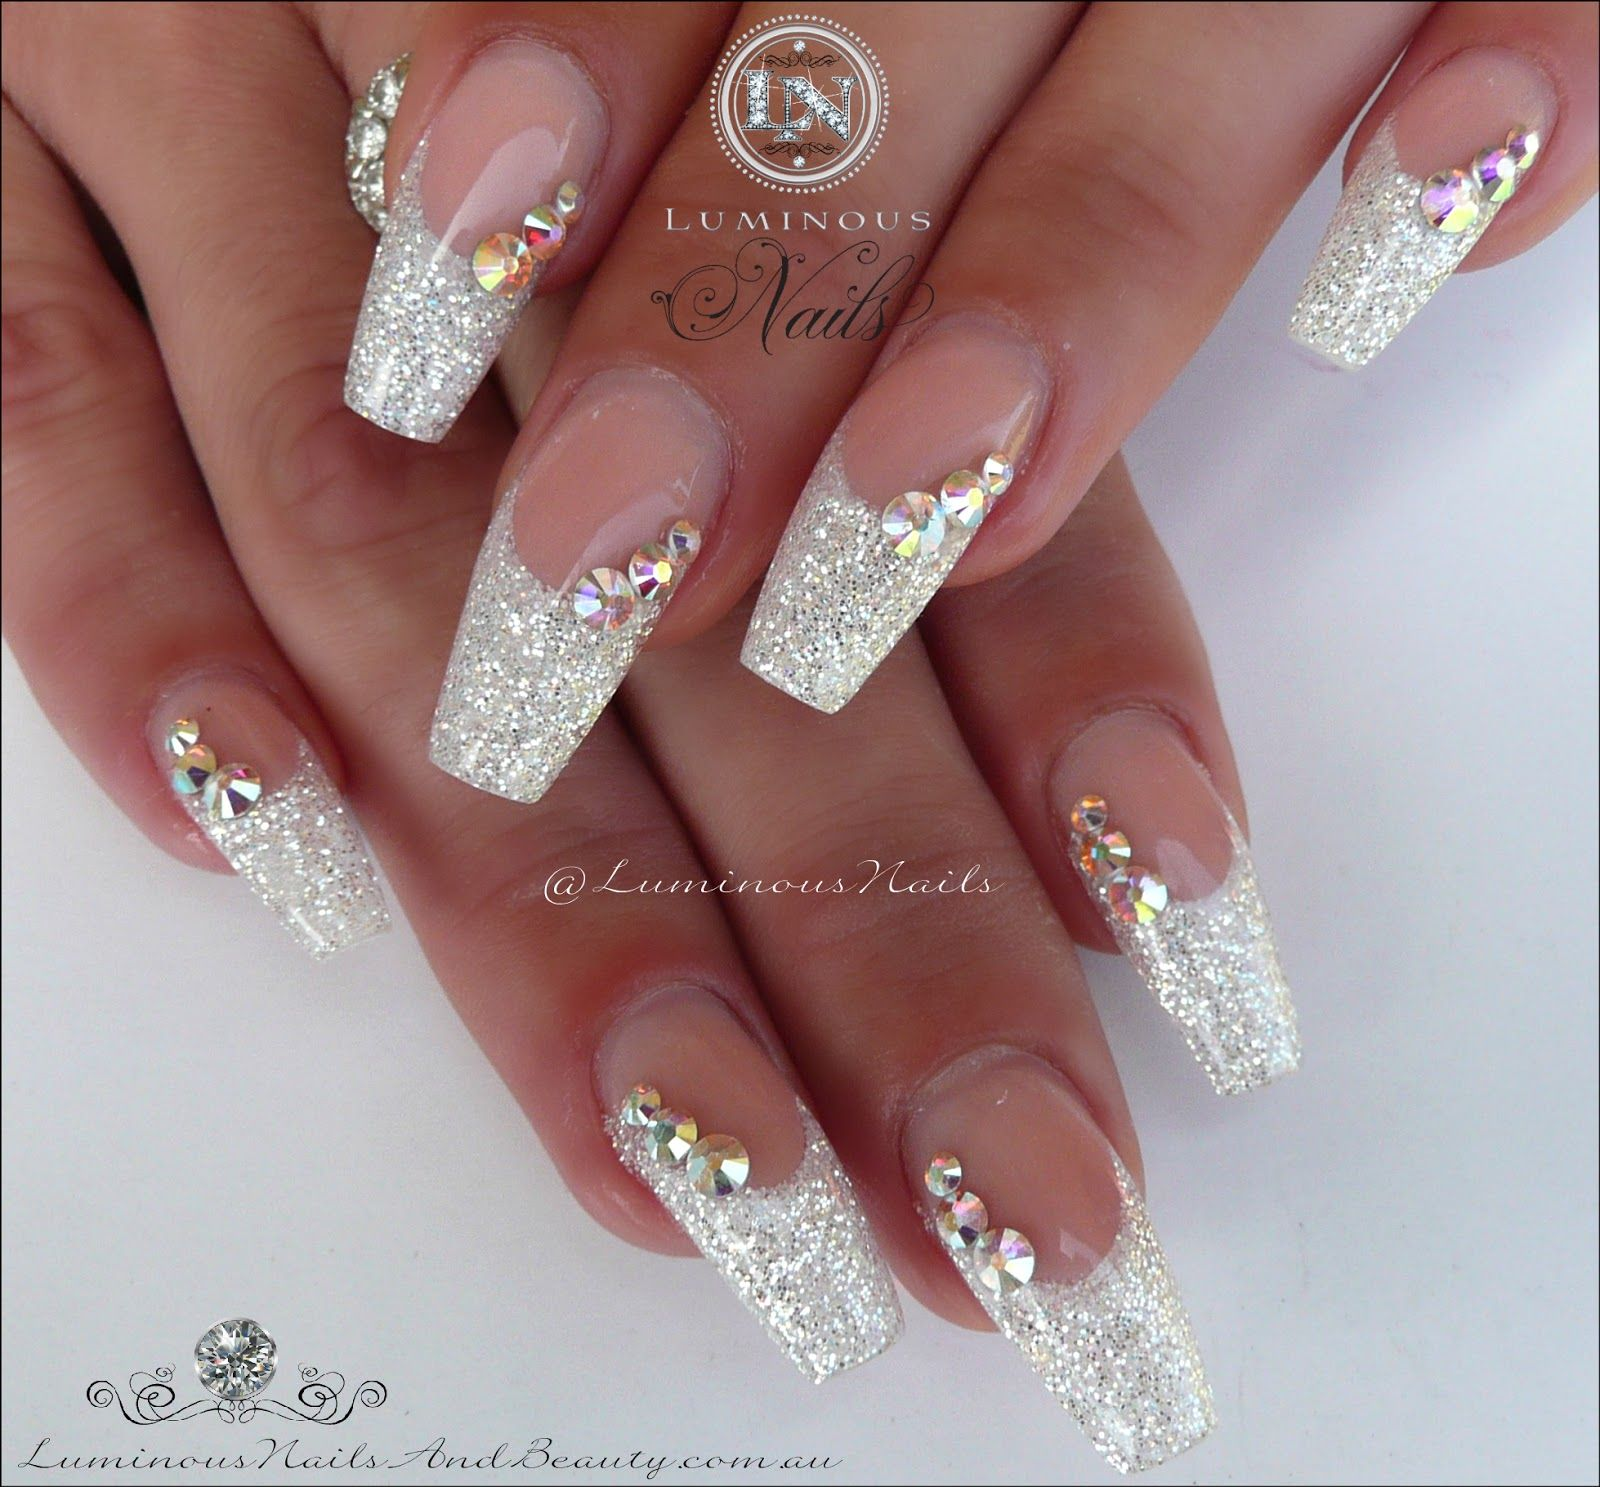 Luminous+Nails+%26+Beauty%2C+Gold+Coast+QLD.+White